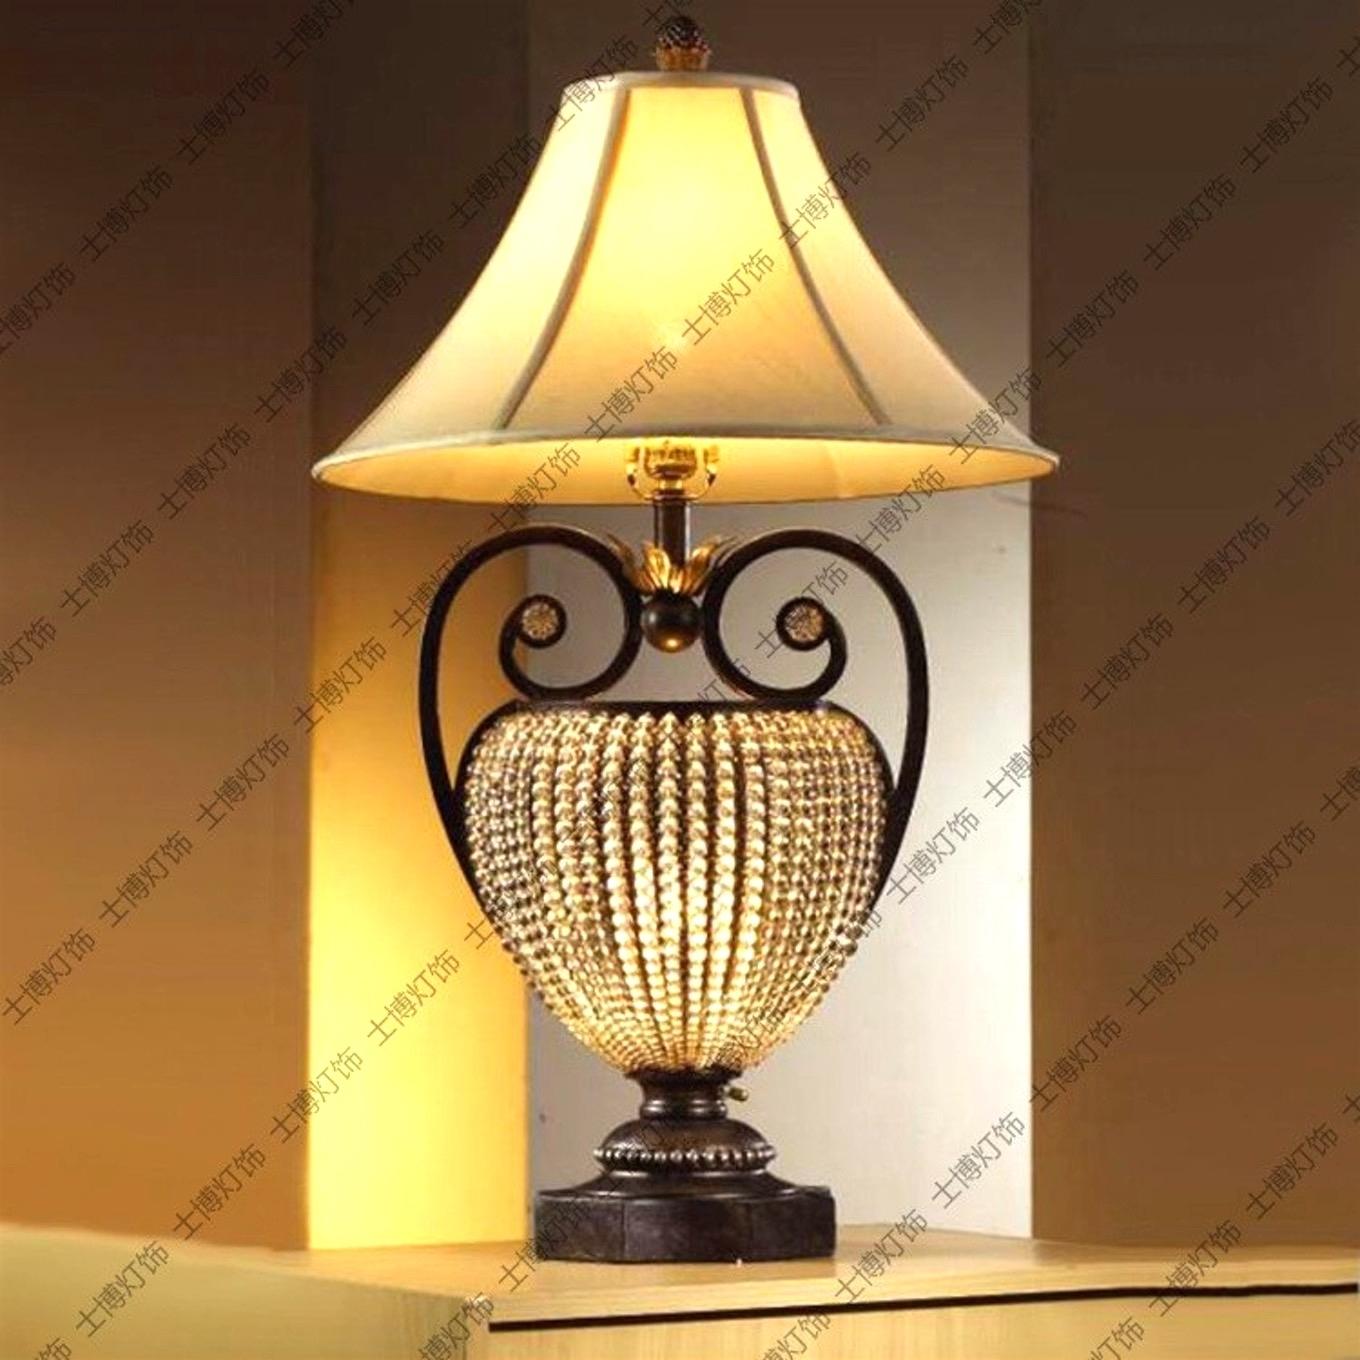 Widely Used Traditional Table Lamps For Living Room Throughout Bedside Lamps ~ Traditional Table Lamps For Living Room Traditional (View 11 of 15)